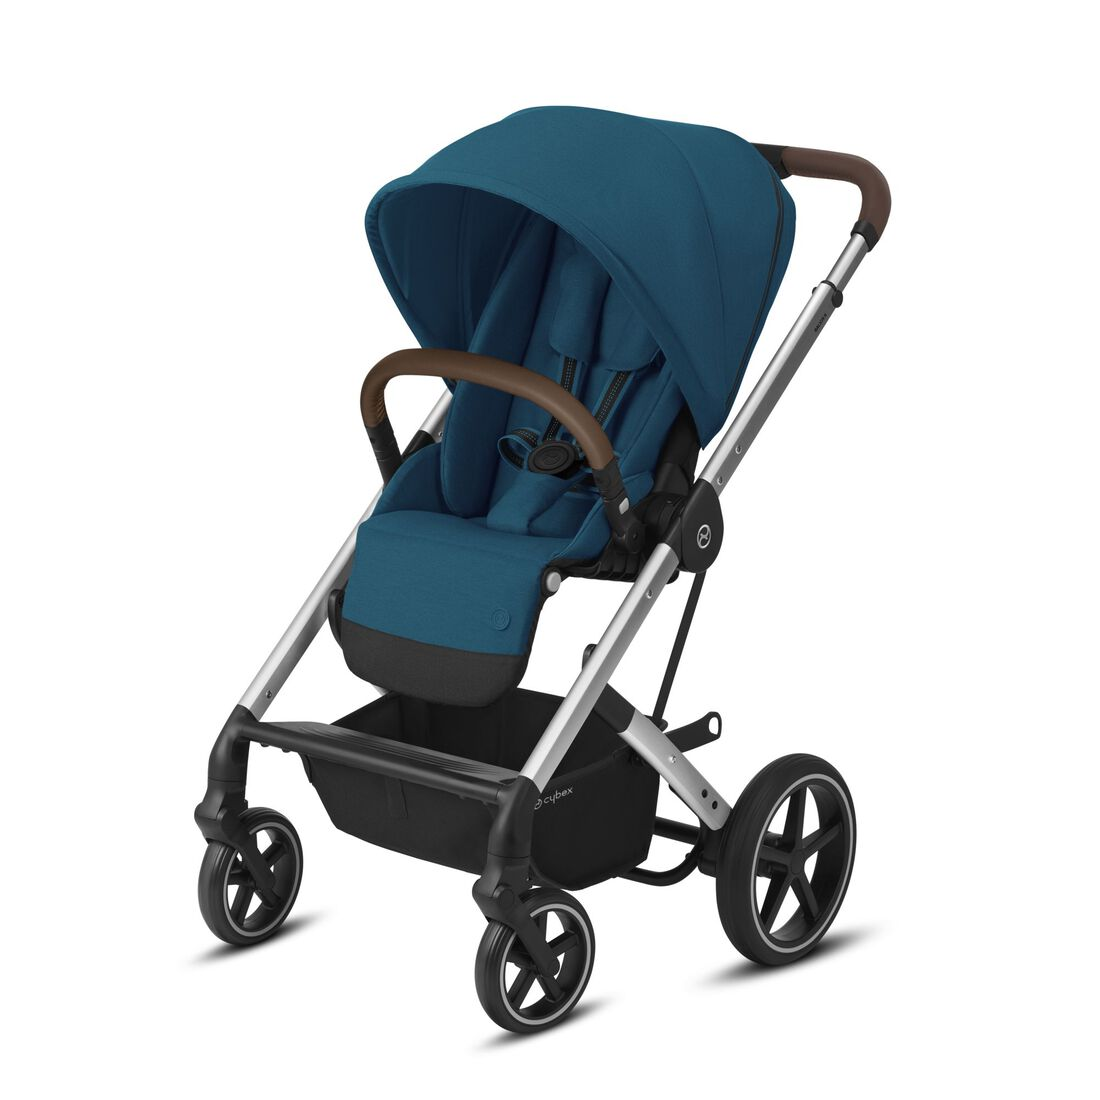 CYBEX Balios S Lux - River Blue (Silver Frame) in River Blue (Silver Frame) large image number 1